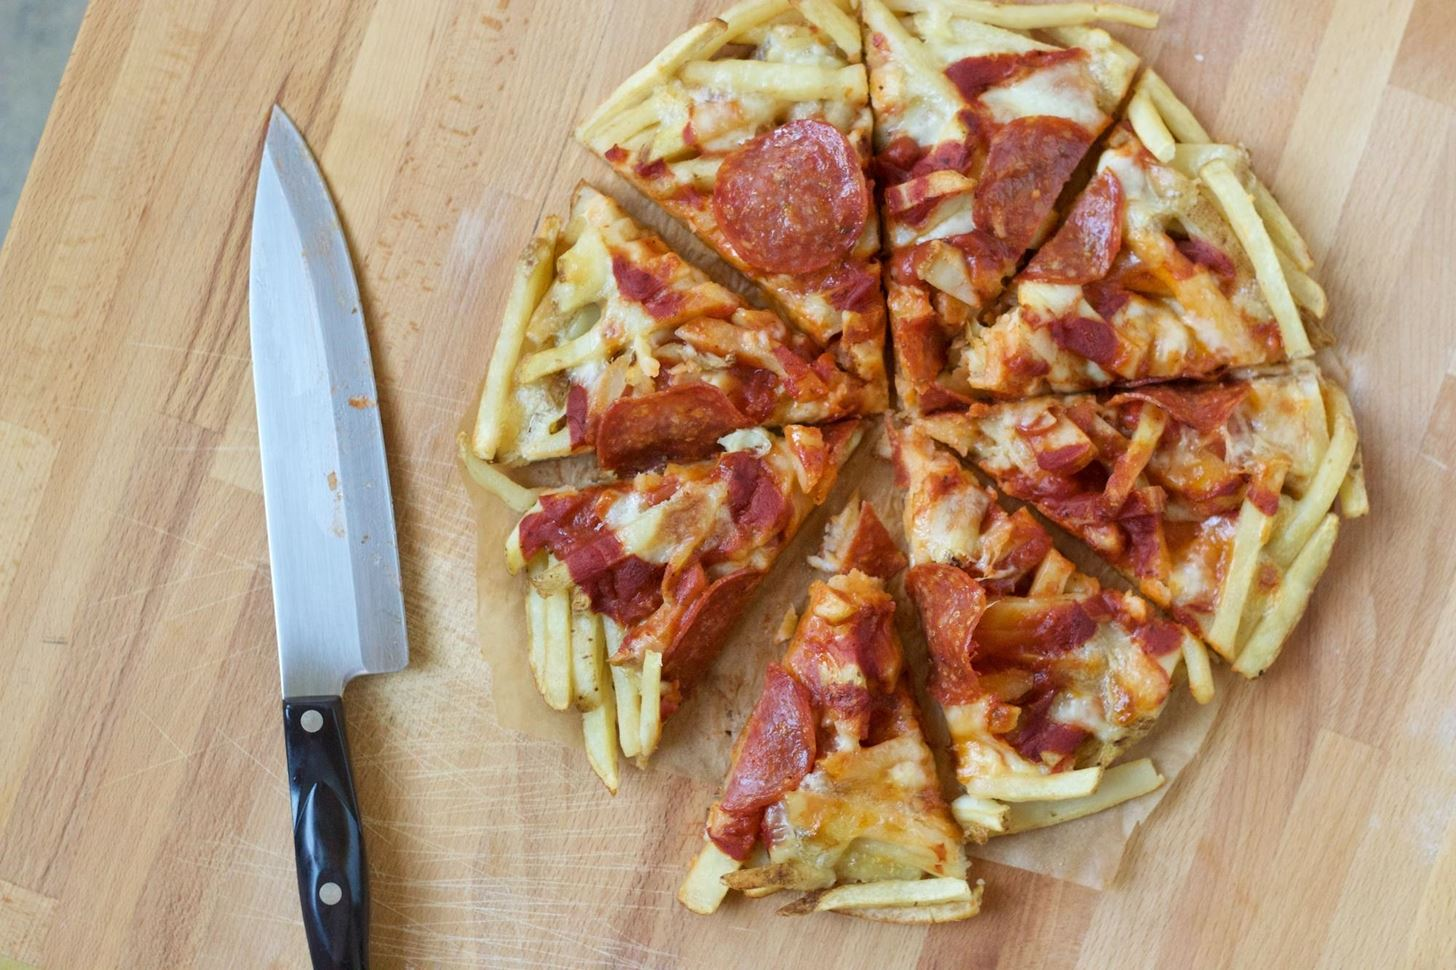 French Fry Pizza Crust—Your Drunk Self Will Thank You Later